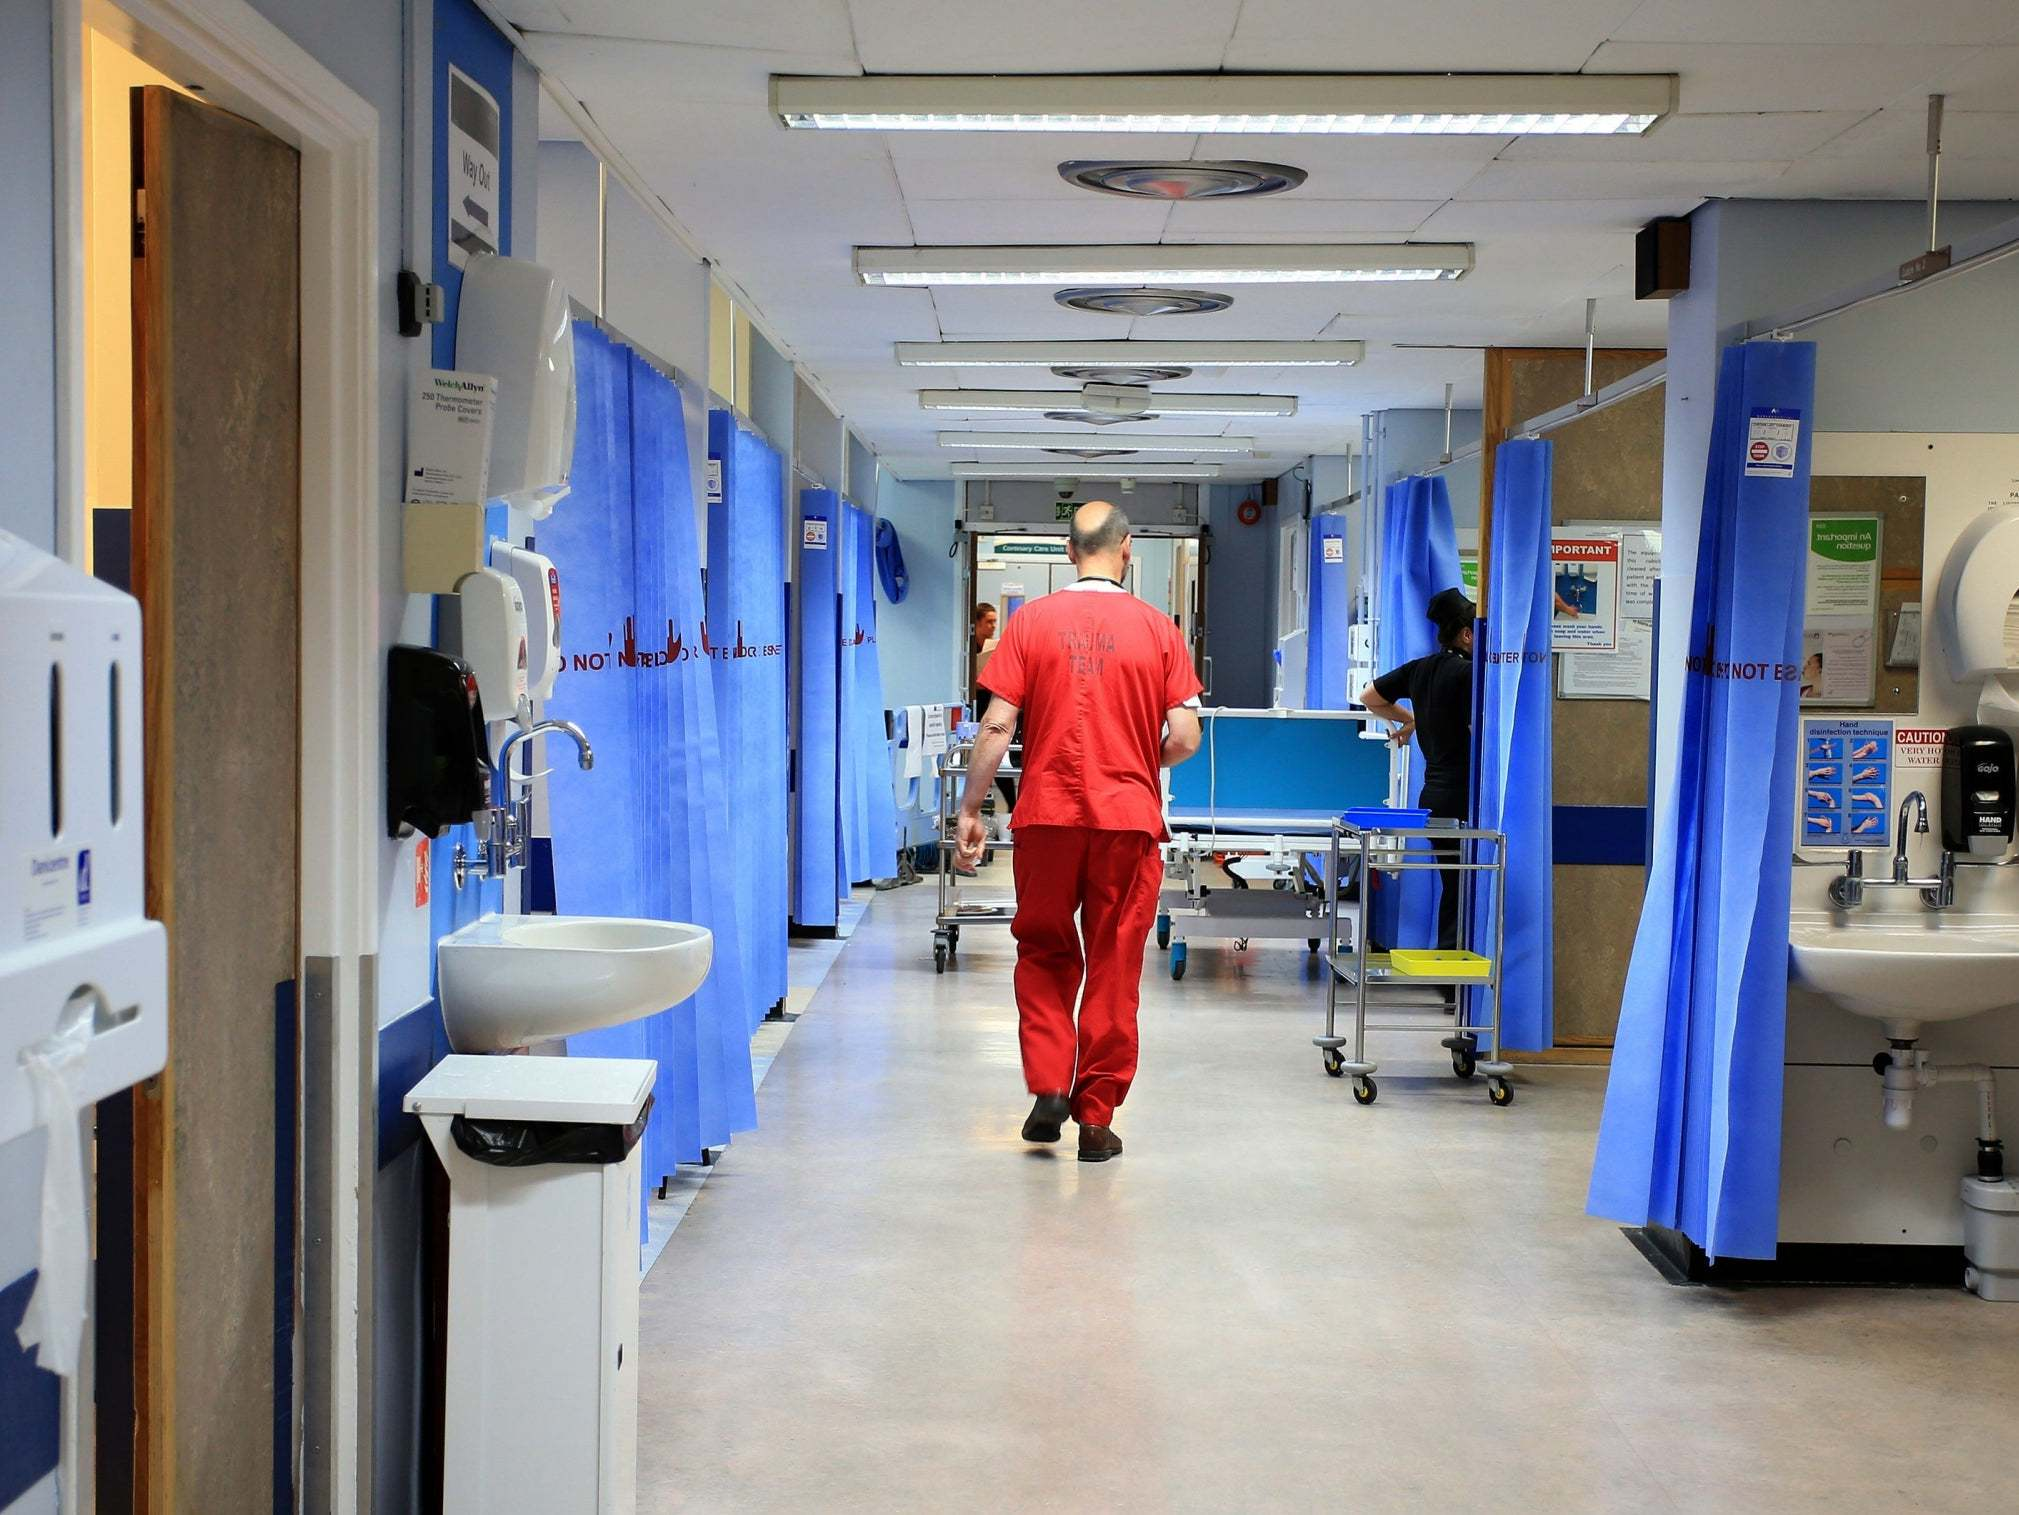 Government to invest £130m in tech to treat cancer, dementia and Parkinson's